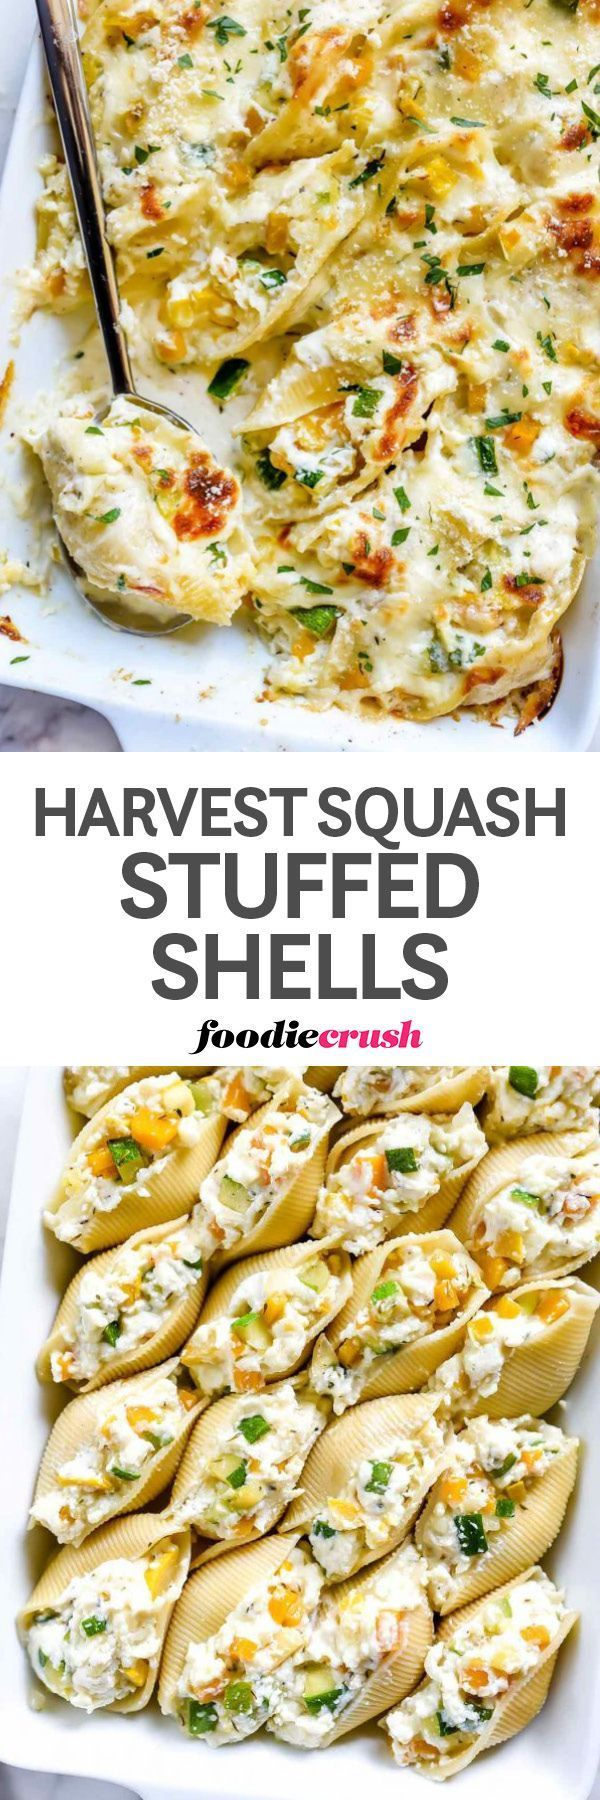 These stuffed shells with zucchini, butternut, and yellow squash baked in a creamy white alfredo sauce couldn't be easier to prep and are even easier to crave | foodiecrush.com #pasta #recipes #baked #dinnertime